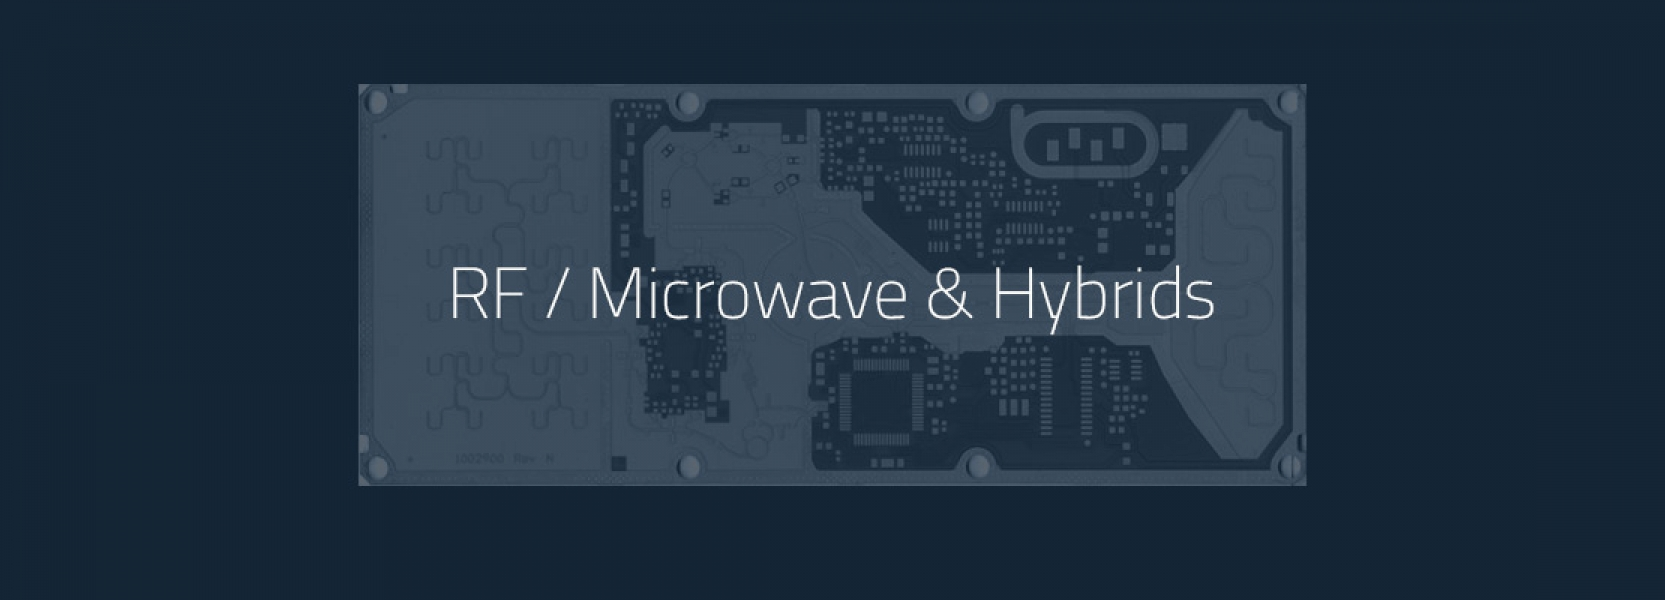 RF/Microwave and Hybrids